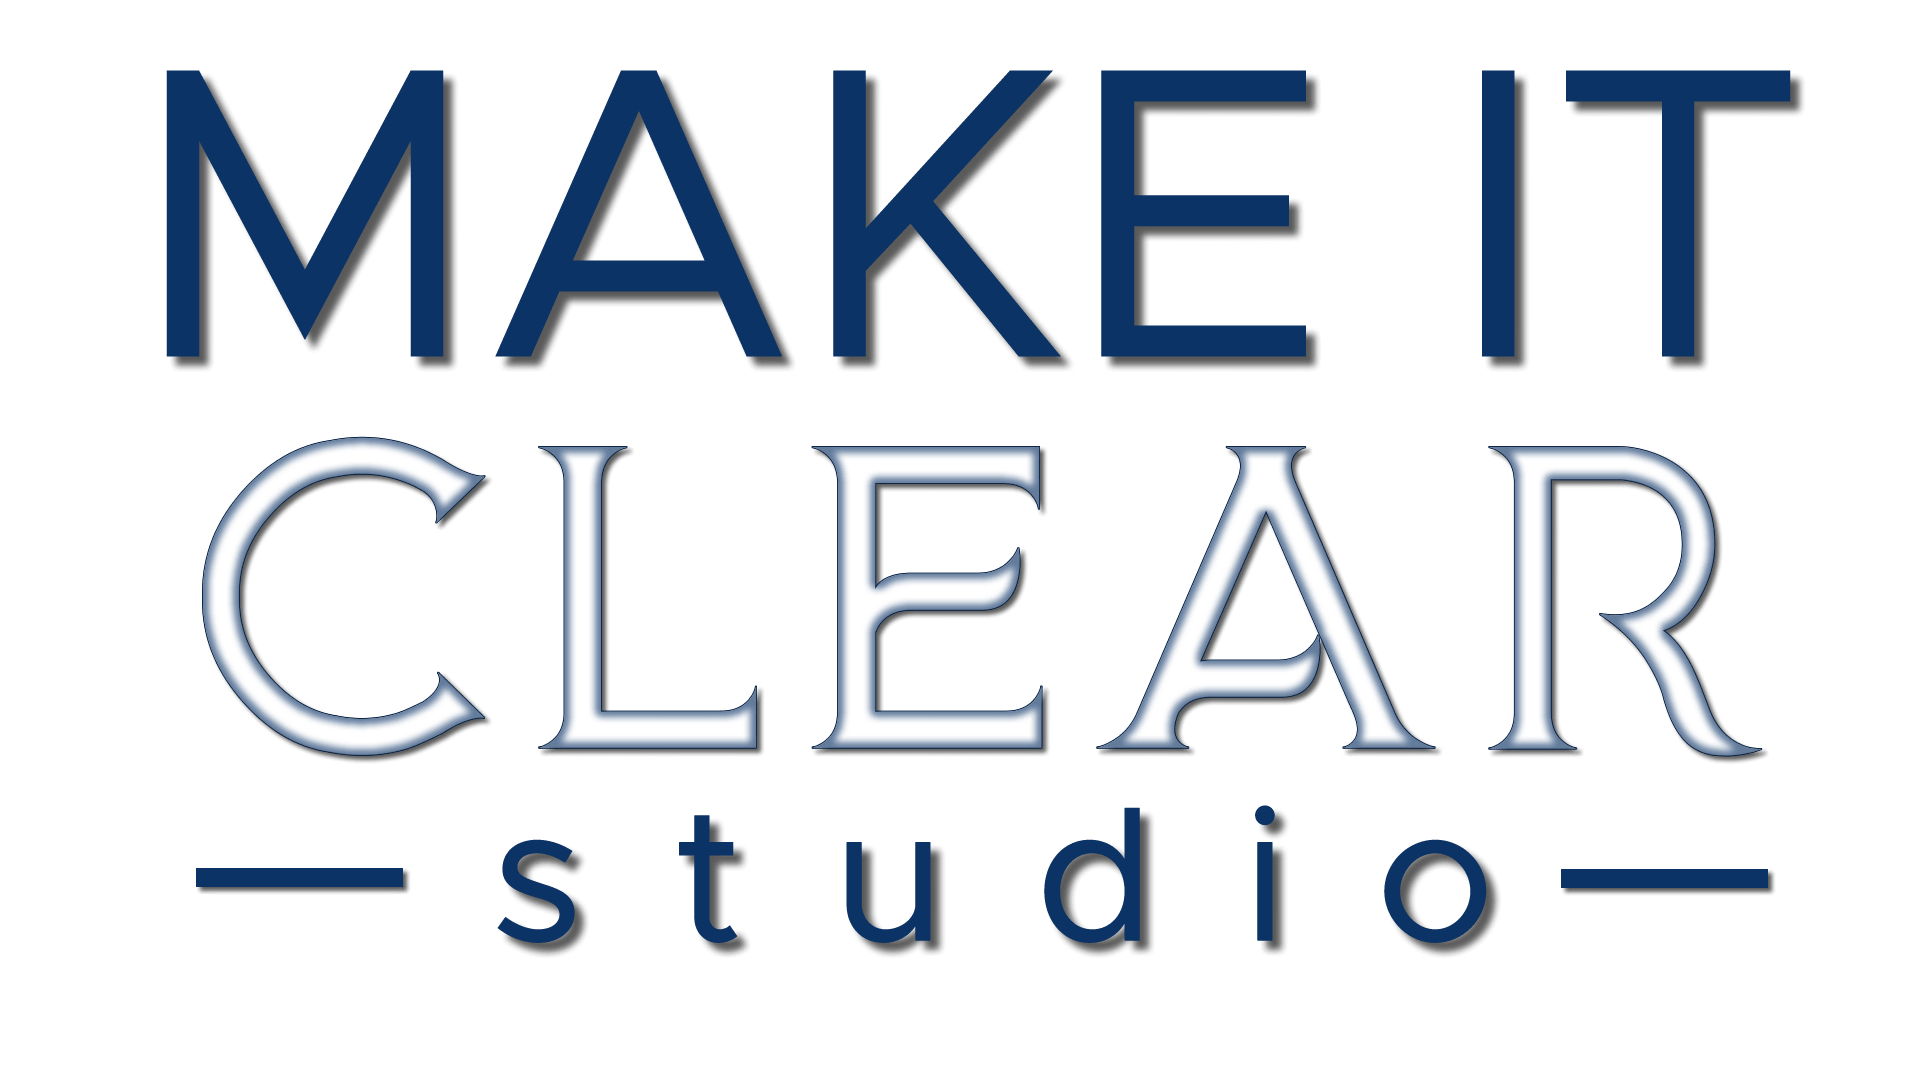 Make It Clear Studio